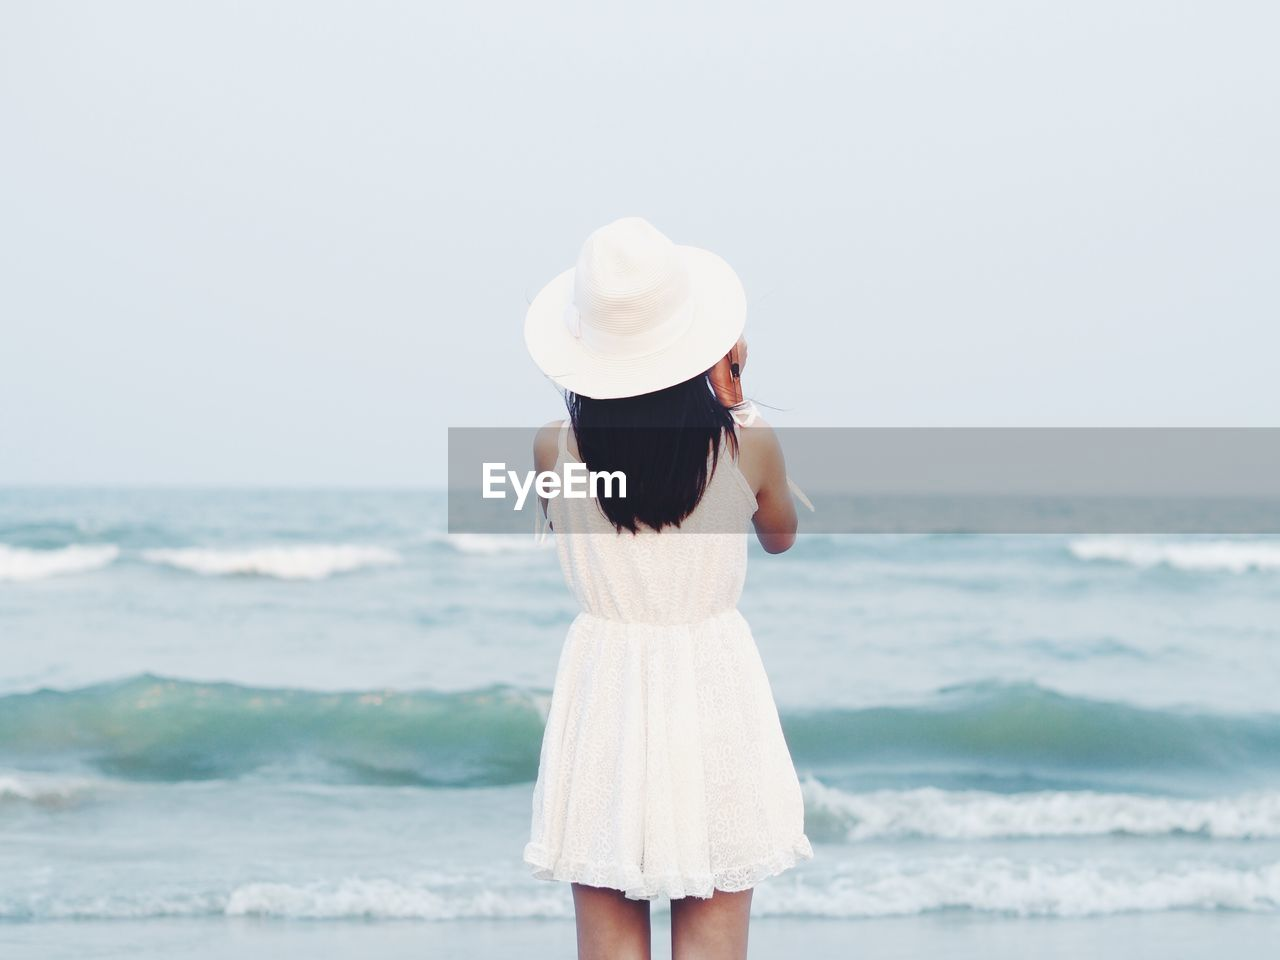 sea, hat, rear view, one person, real people, beach, horizon over water, leisure activity, three quarter length, standing, nature, outdoors, women, sun hat, beauty in nature, clear sky, sky, vacations, water, lifestyles, day, scenics, wave, young adult, adult, people